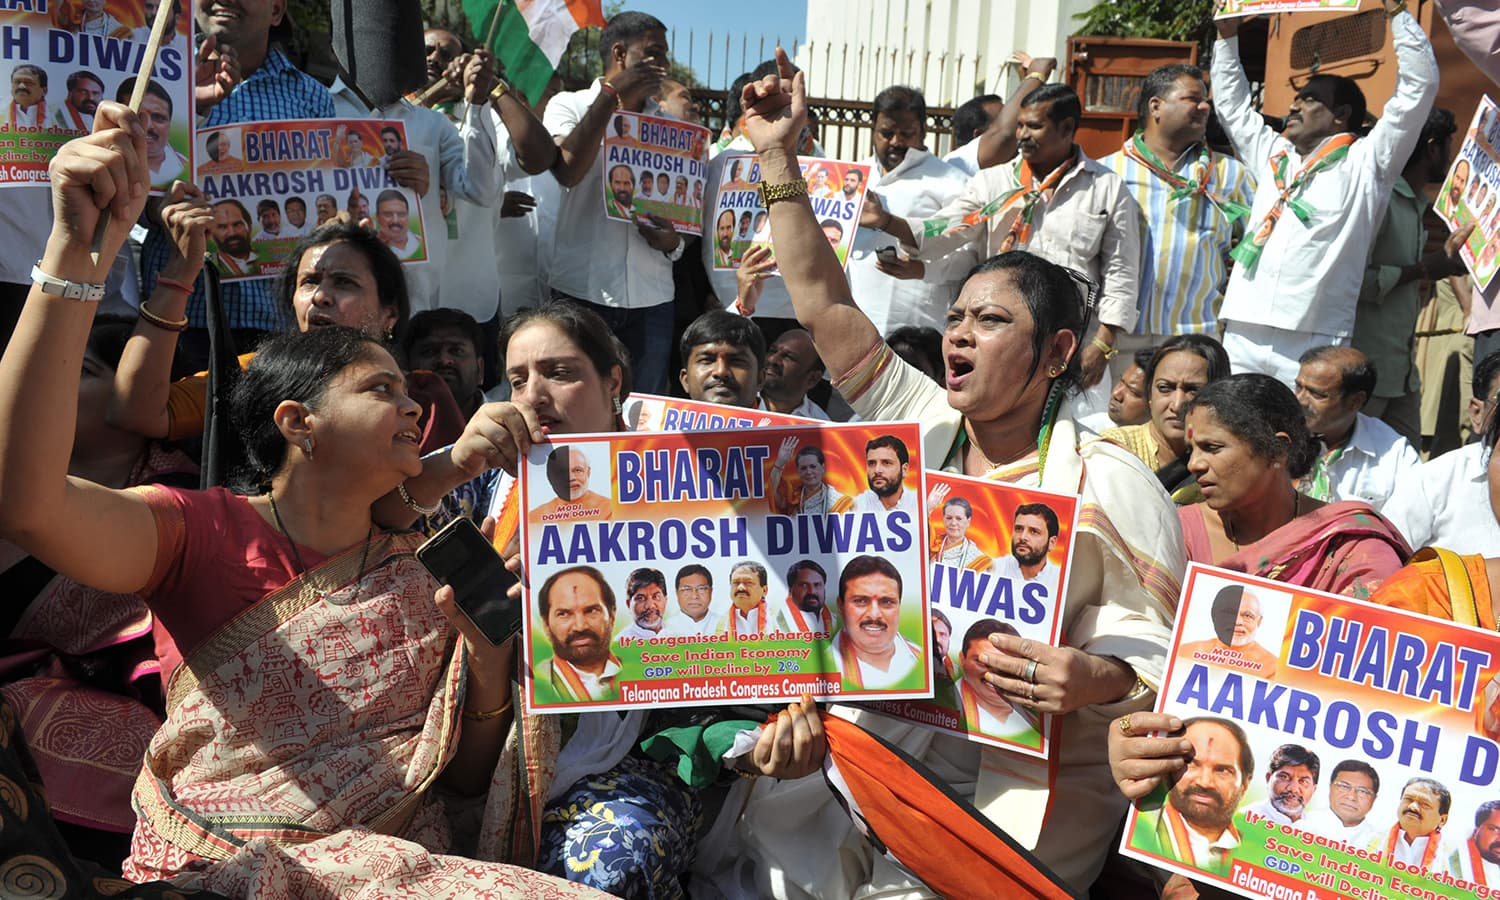 Members of the Congress party shout slogans during a protest as part of 'Jan Aakrosh Diwas' in front of the Reserve Bank of India. ─AFP